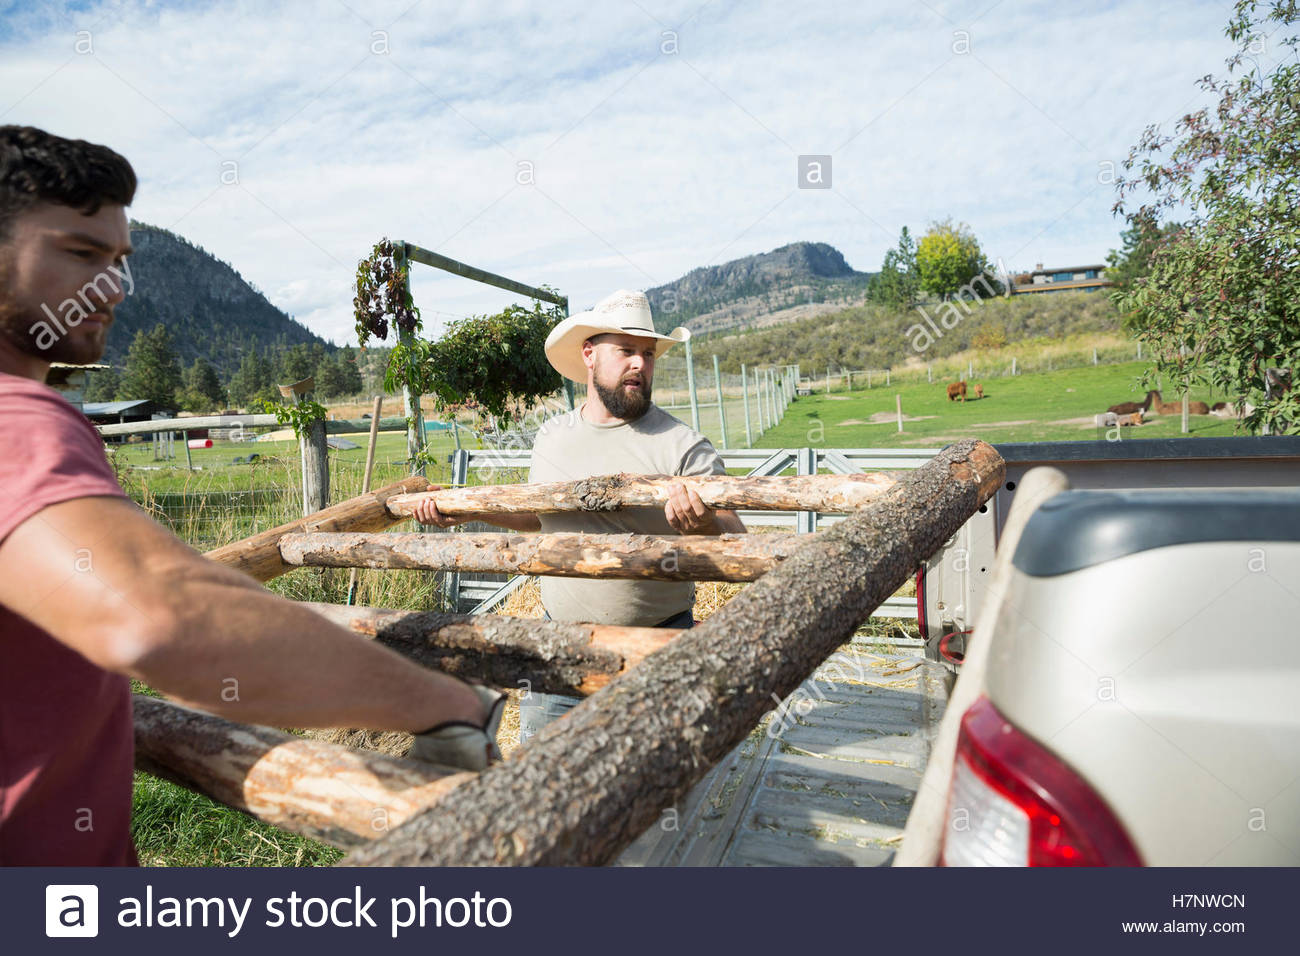 Male farmers lifting wooden fence onto truck bed on sunny farm - Stock Image